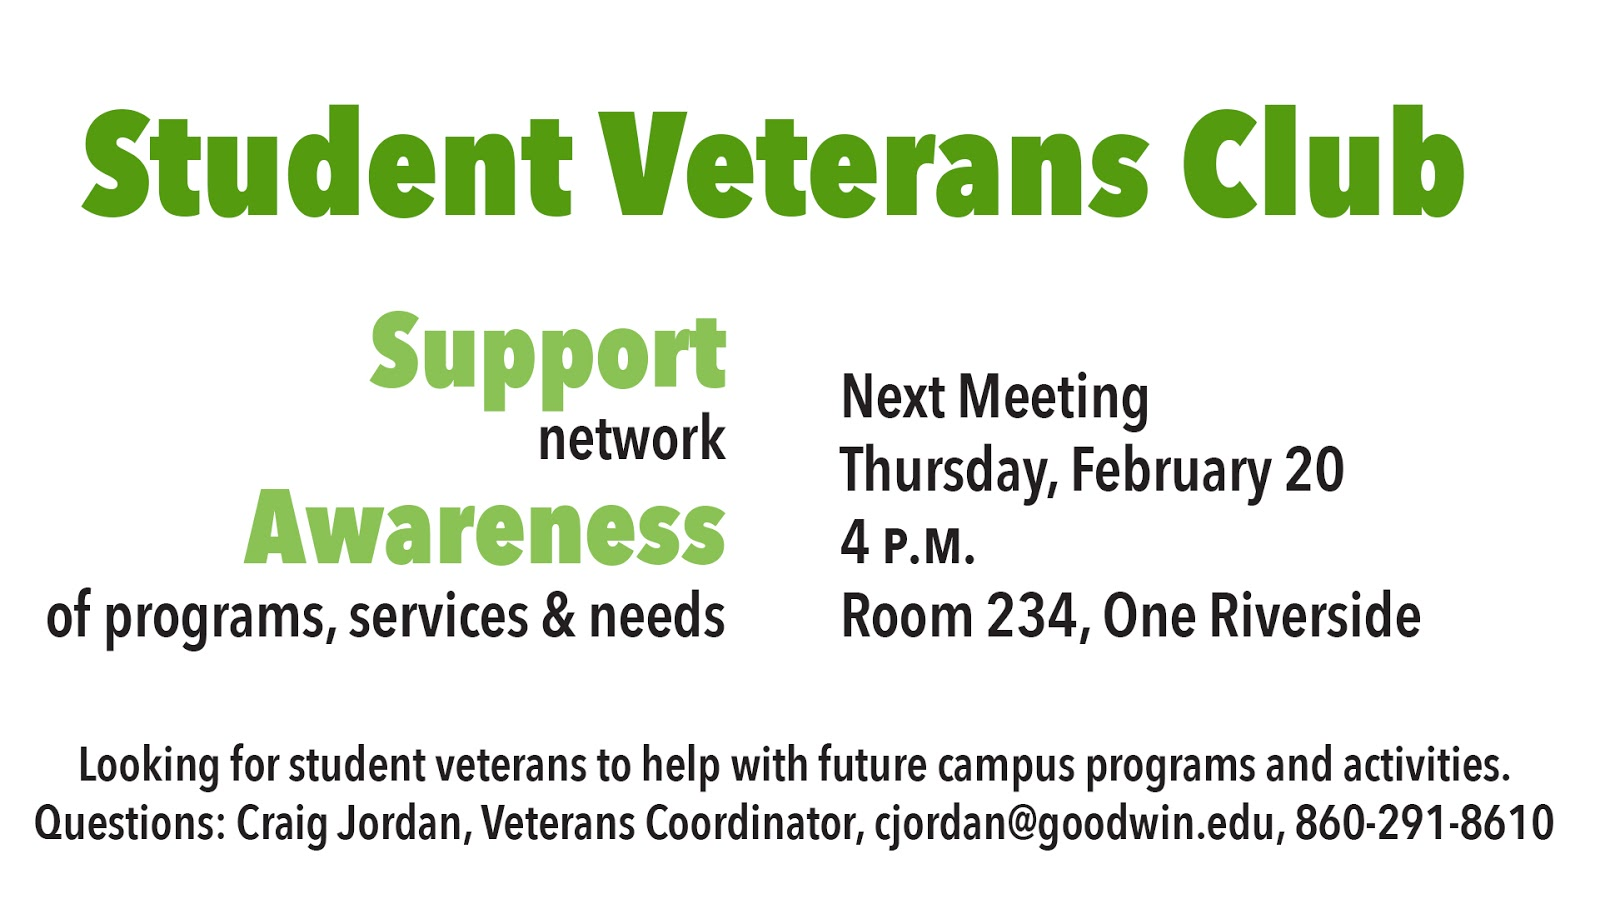 Student Veterans Club Meeting February 20